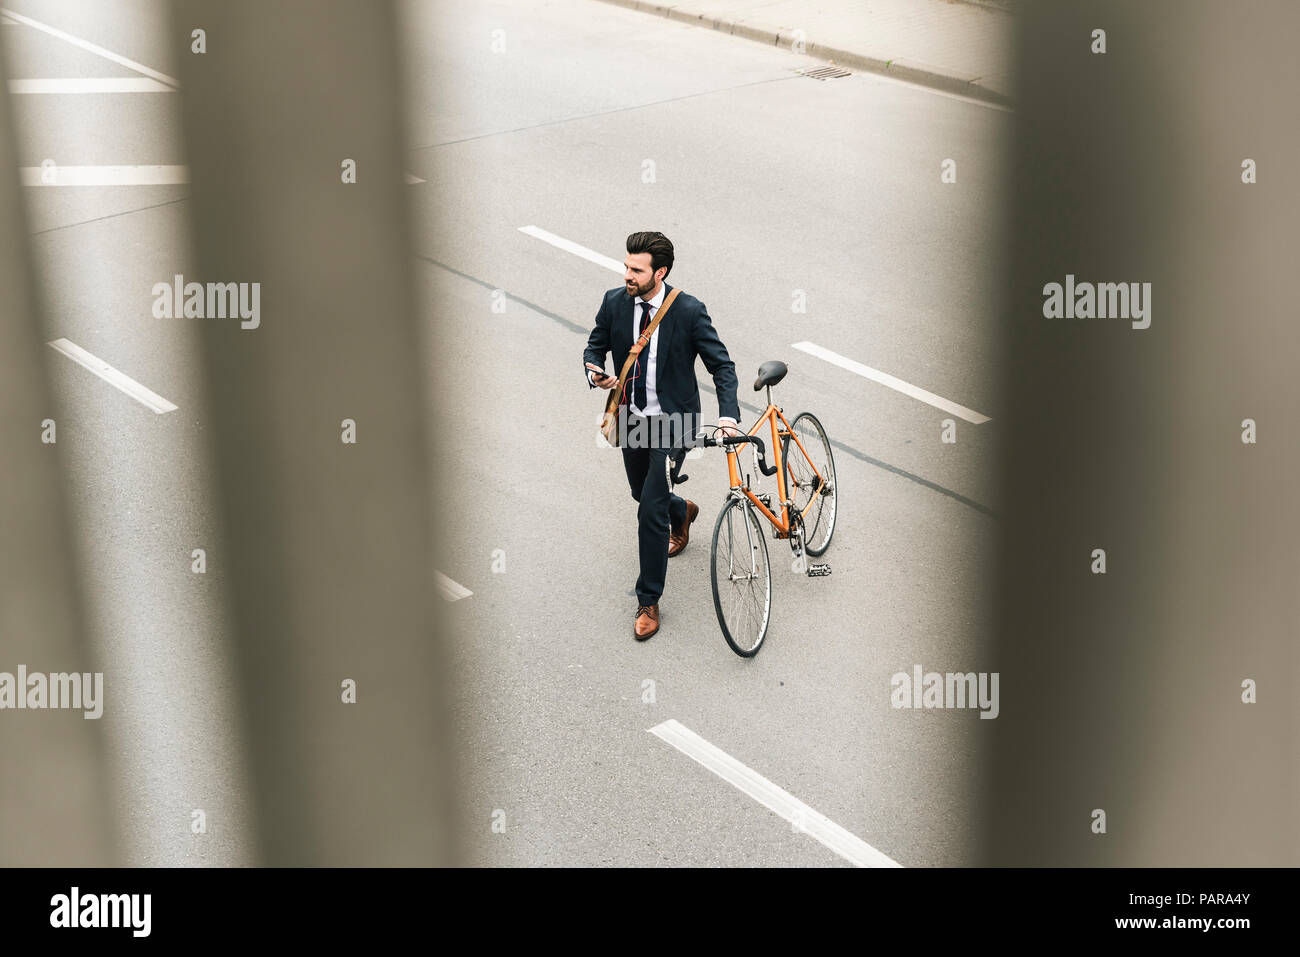 Businessman with bicycle and cell phone walking on the street - Stock Image